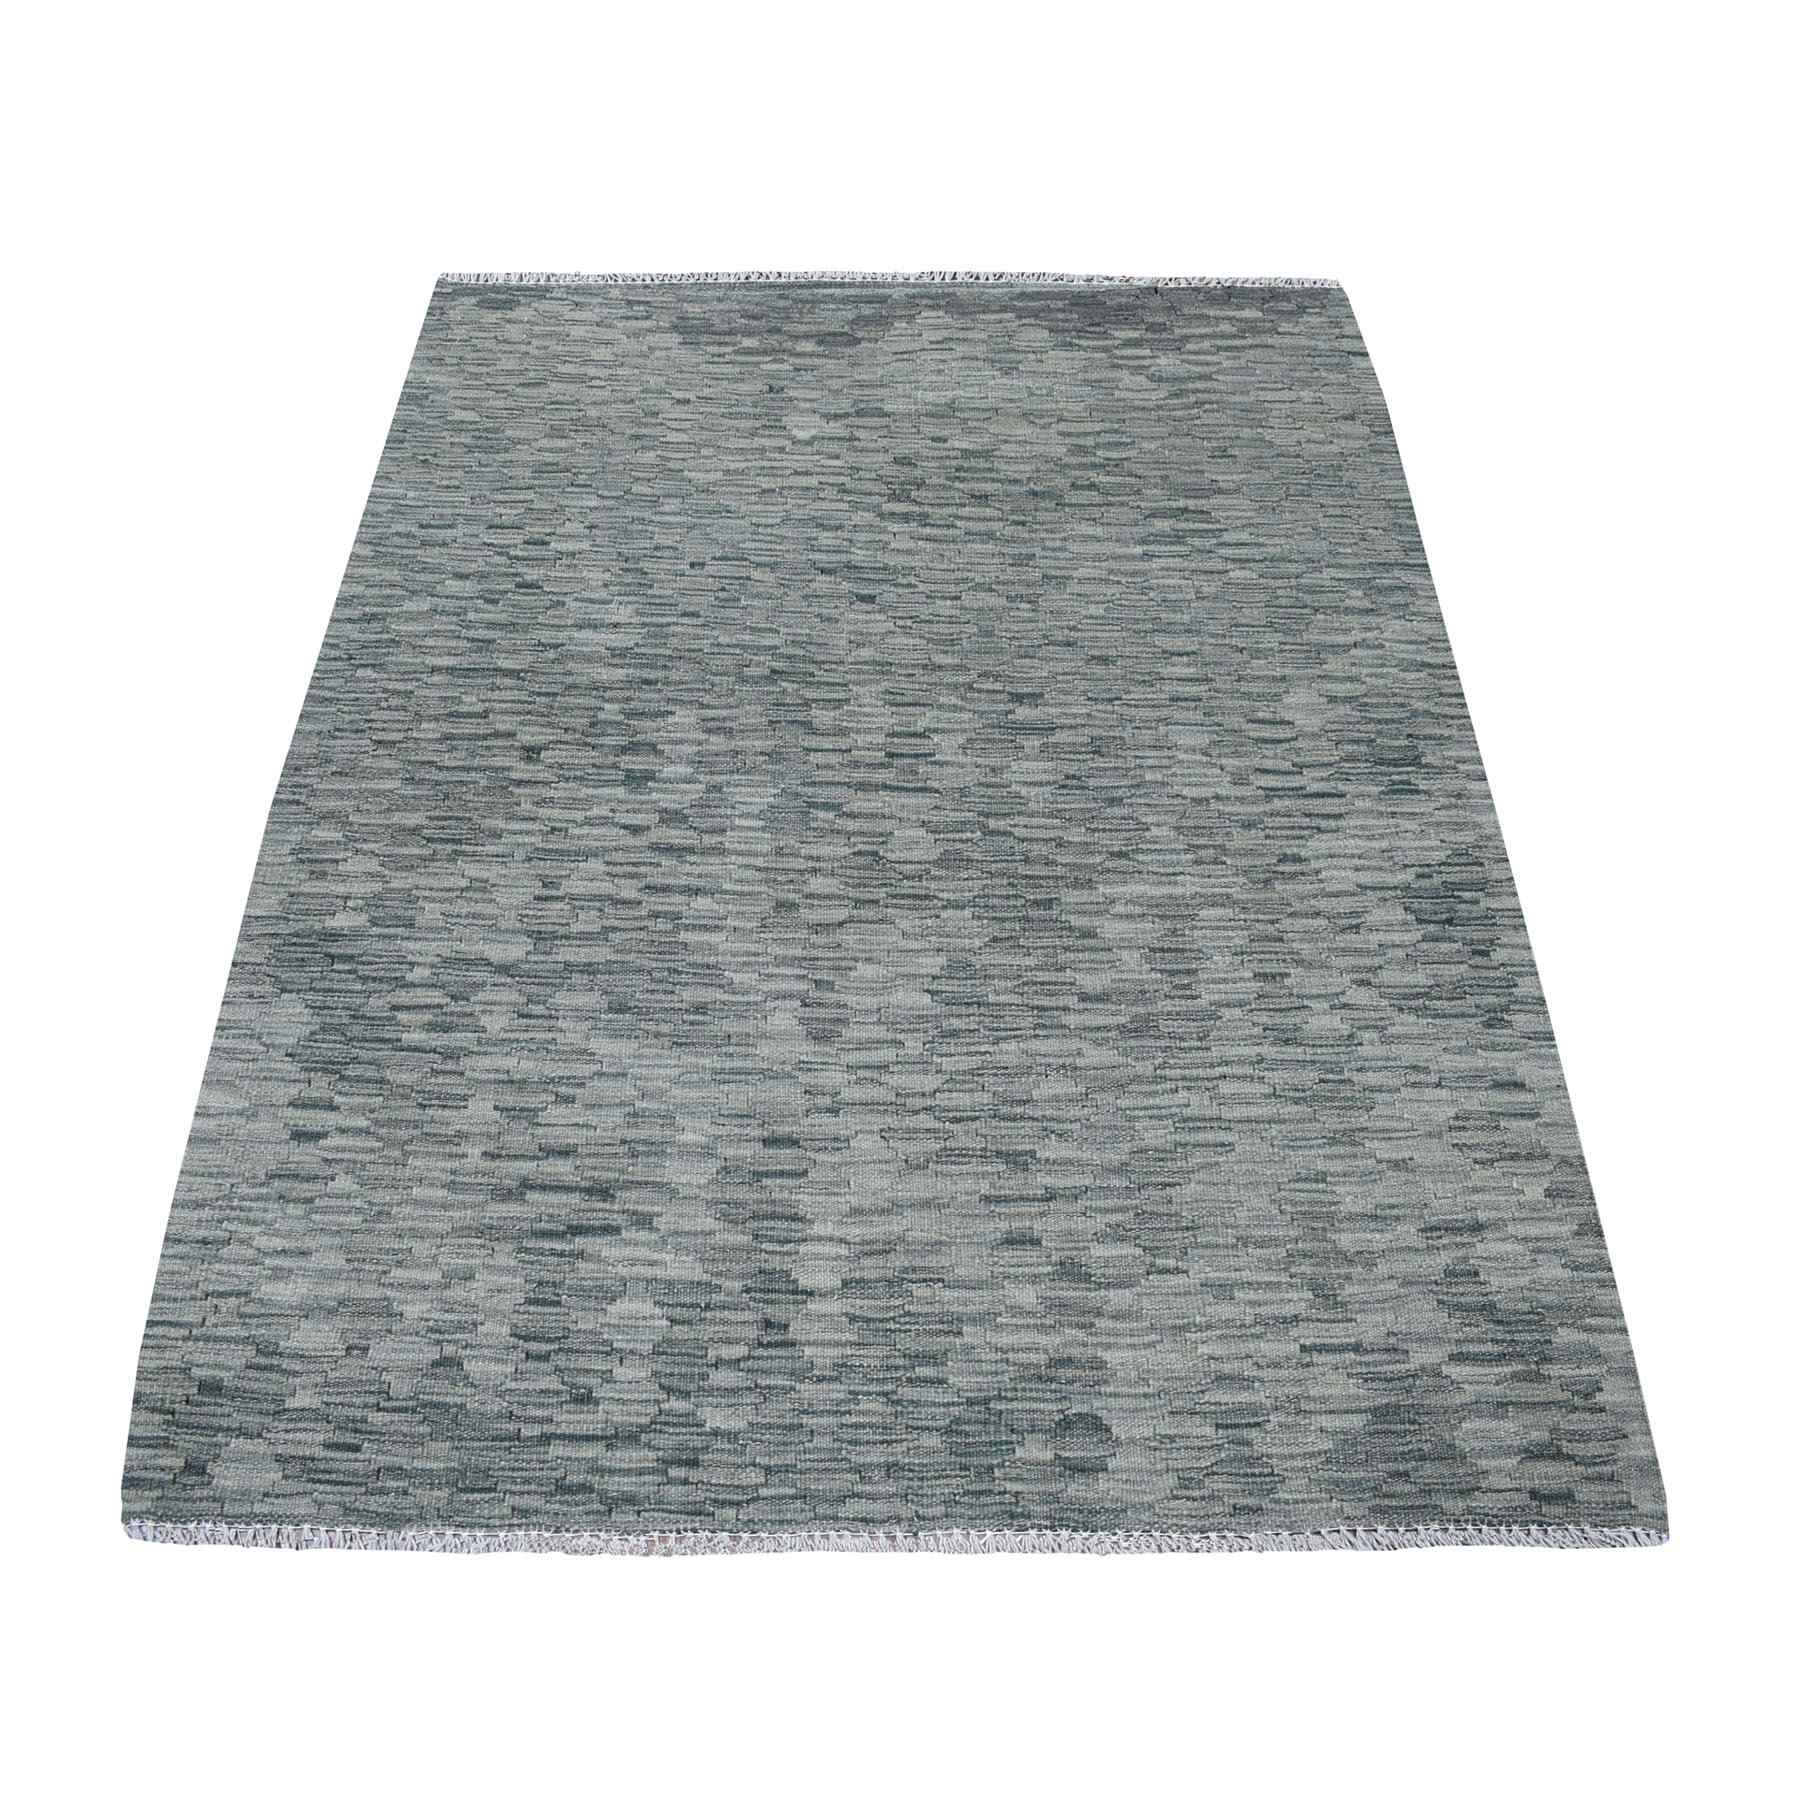 "4'X5'6"" Gray Shades Flat Weave Reversible Kilim Pure Wool Hand Woven Runner Oriental Rug moaedbc7"